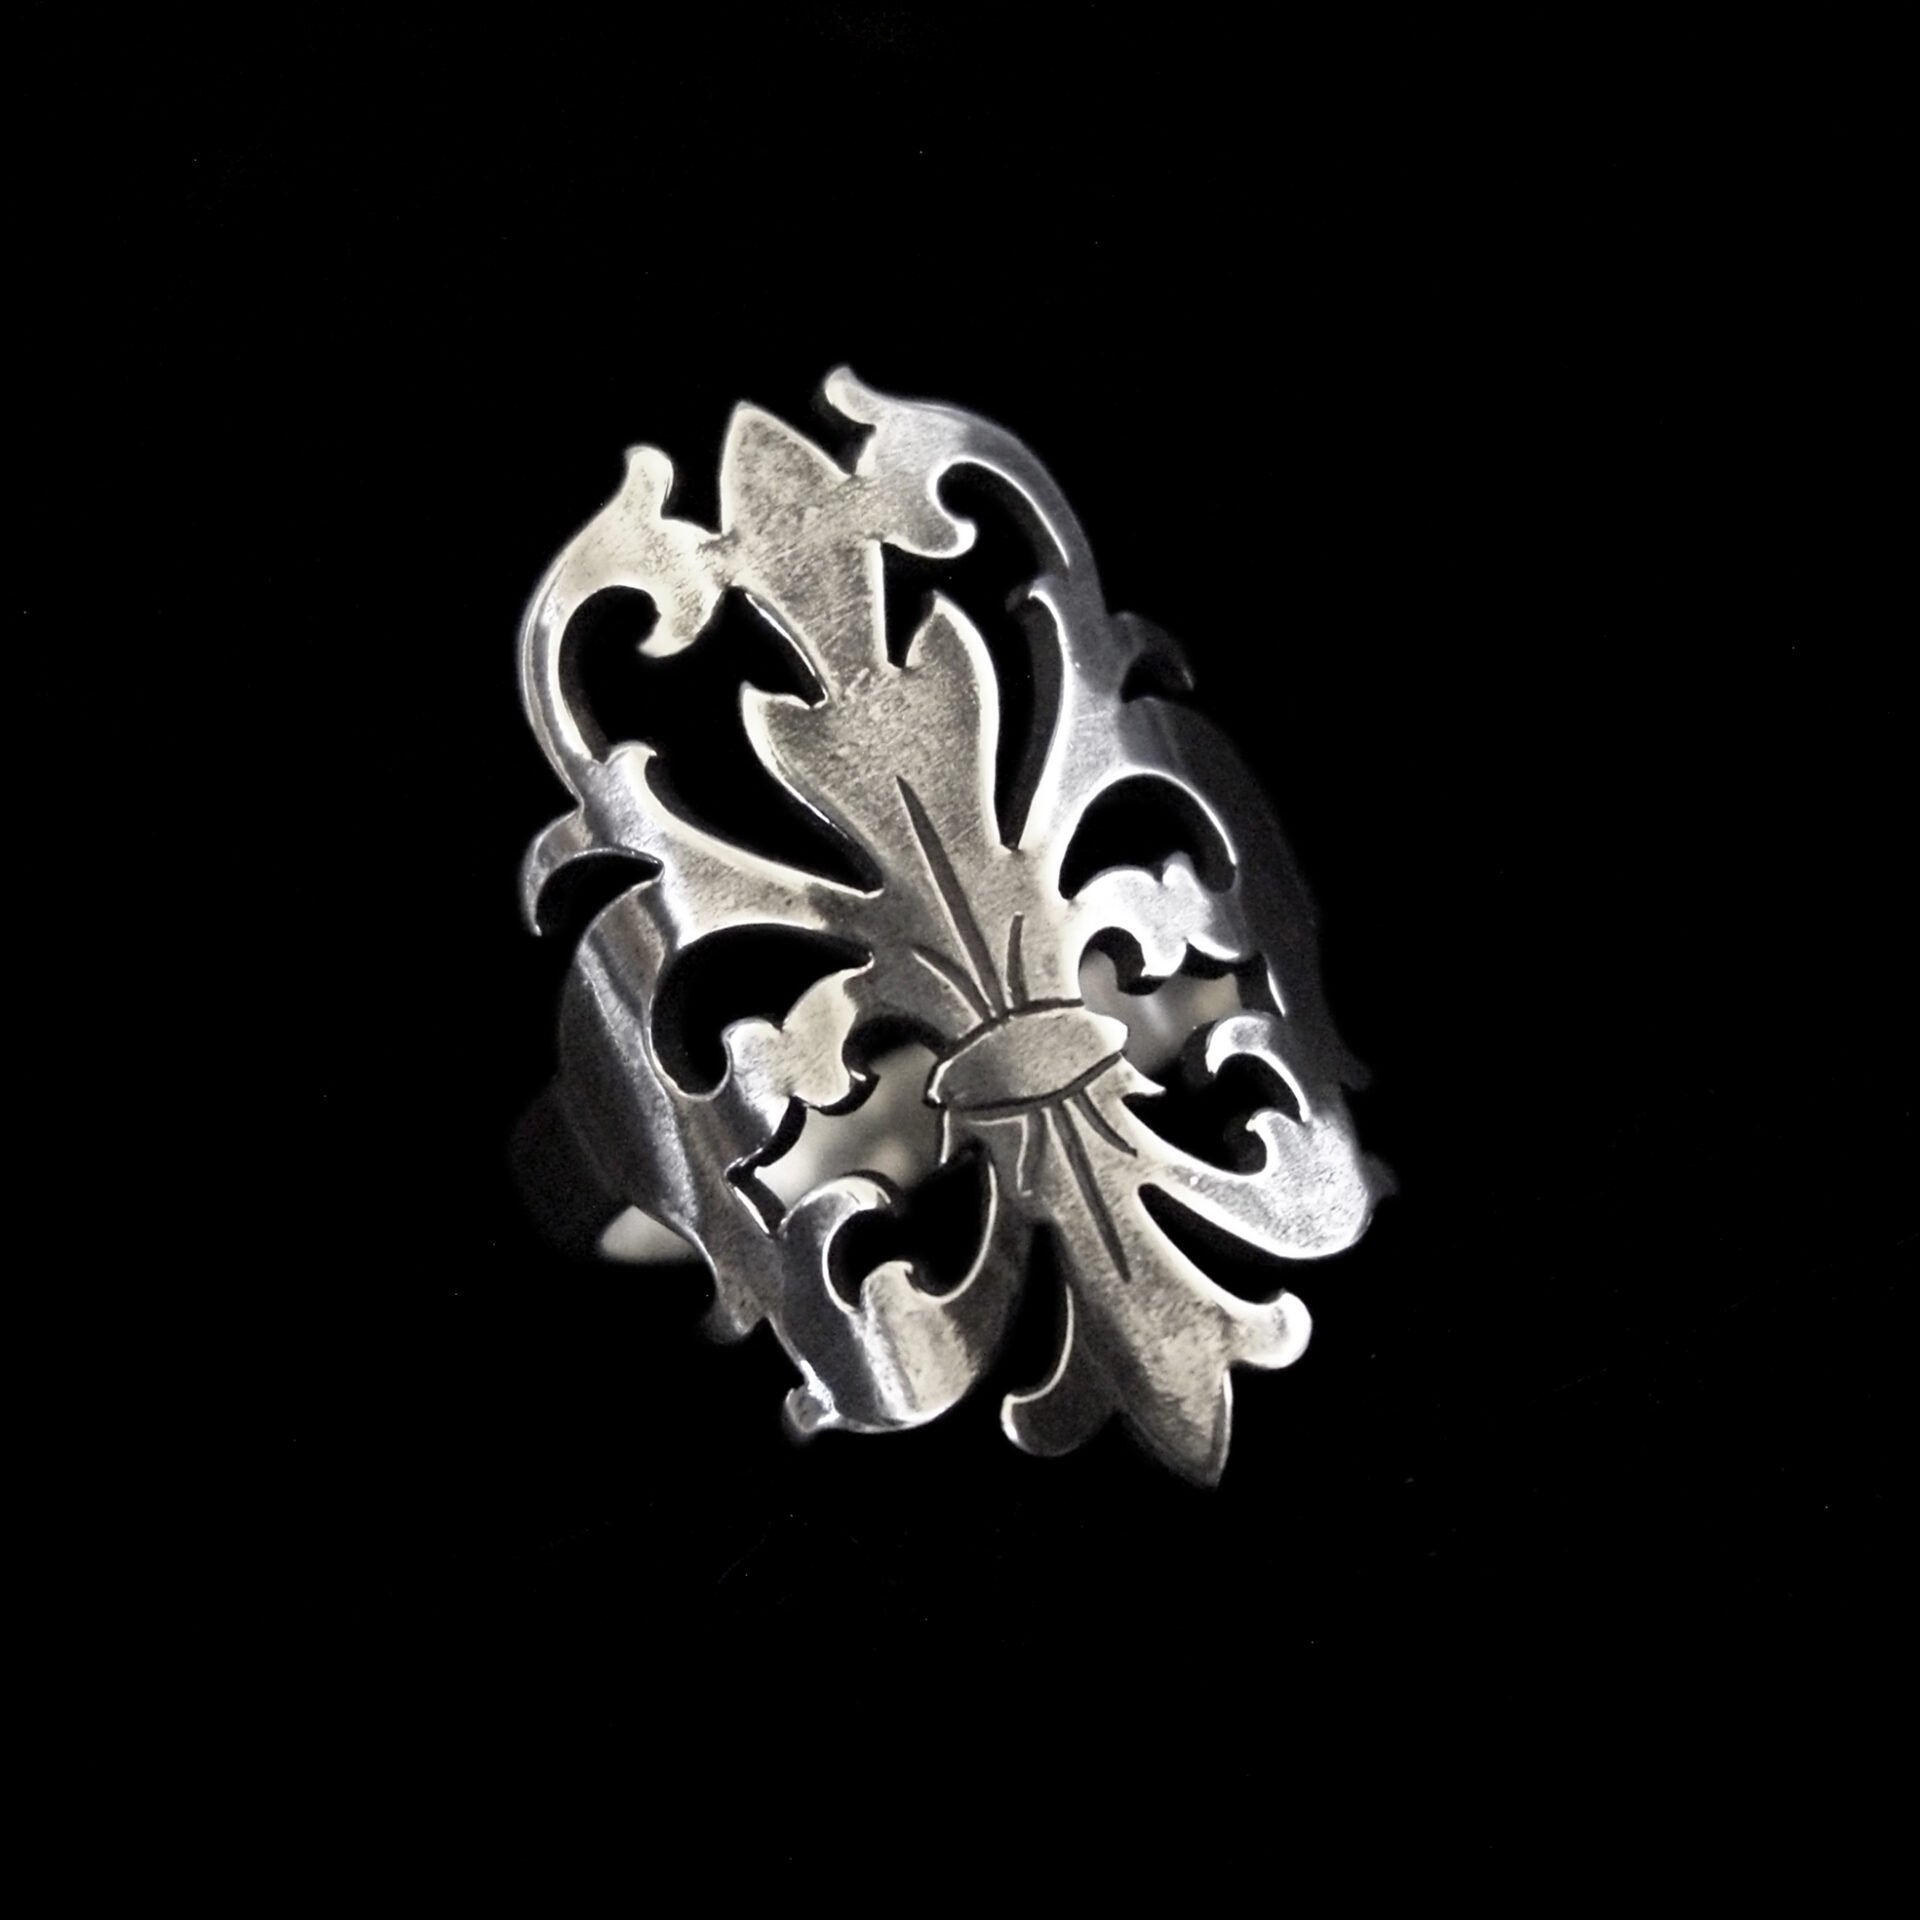 Obsidian Queen – Silver Ring By Skadi Jewellery Design